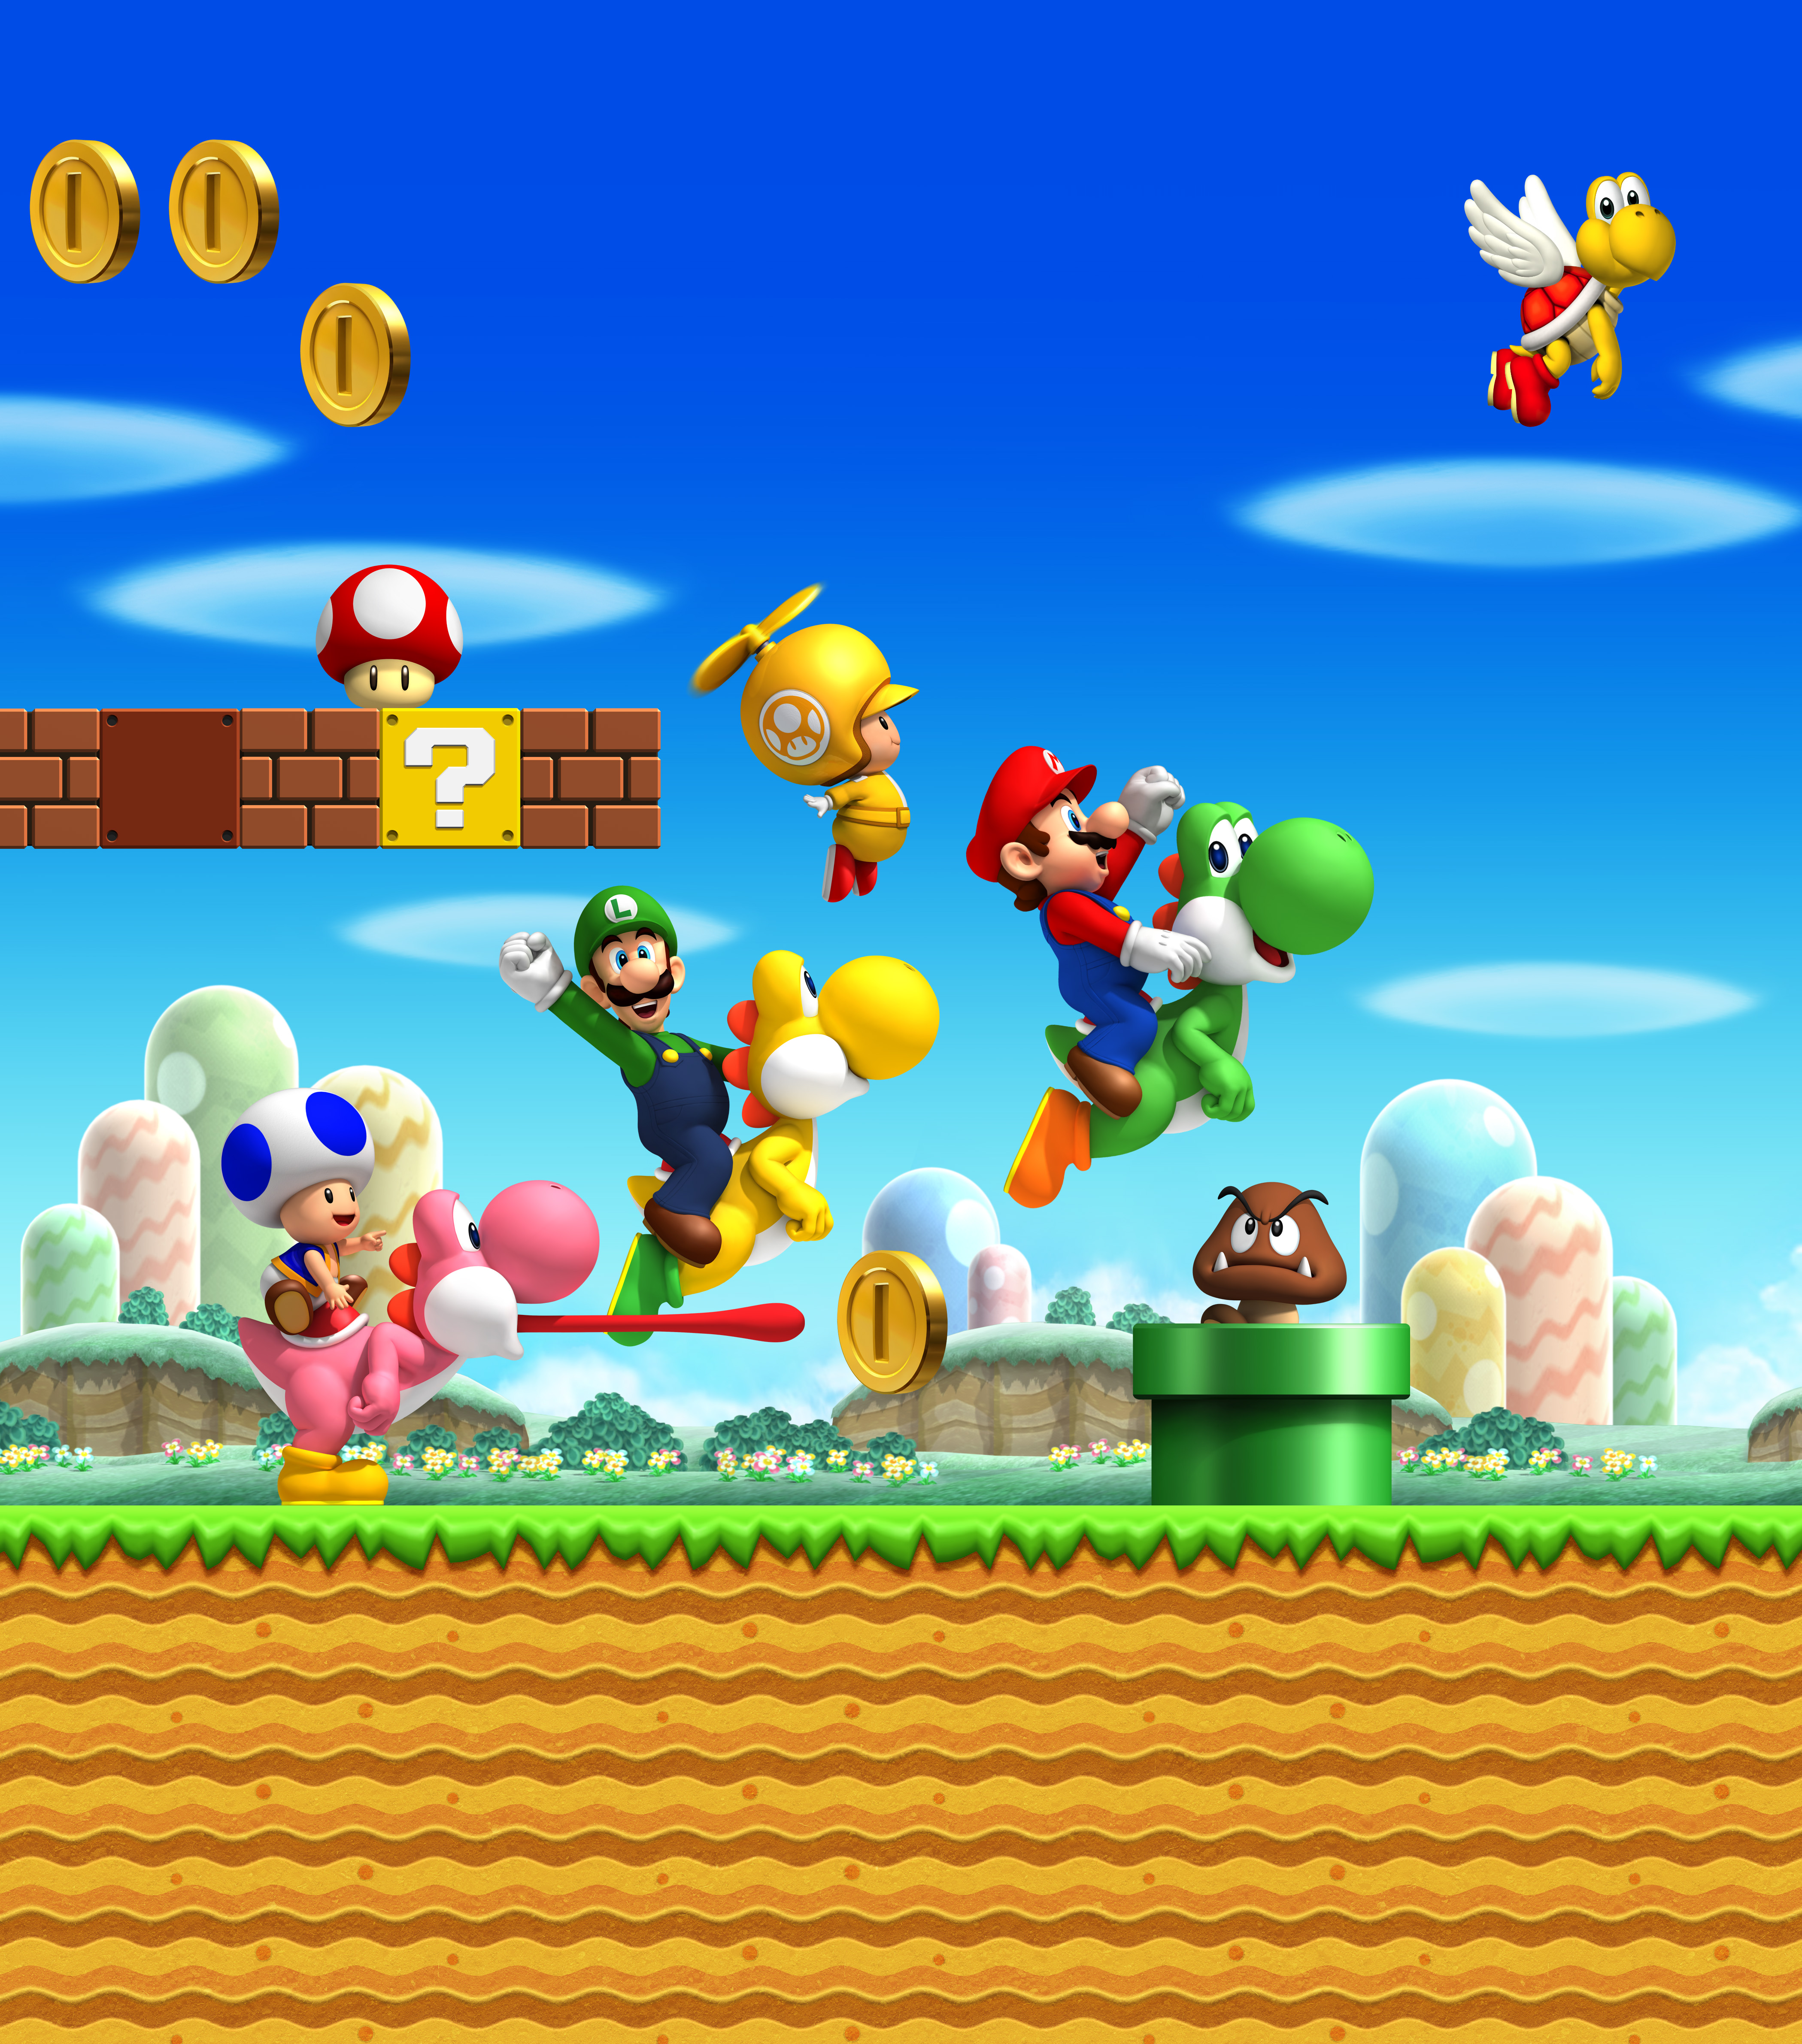 New Super Mario Bros Backgrounds Posted By Samantha Walker